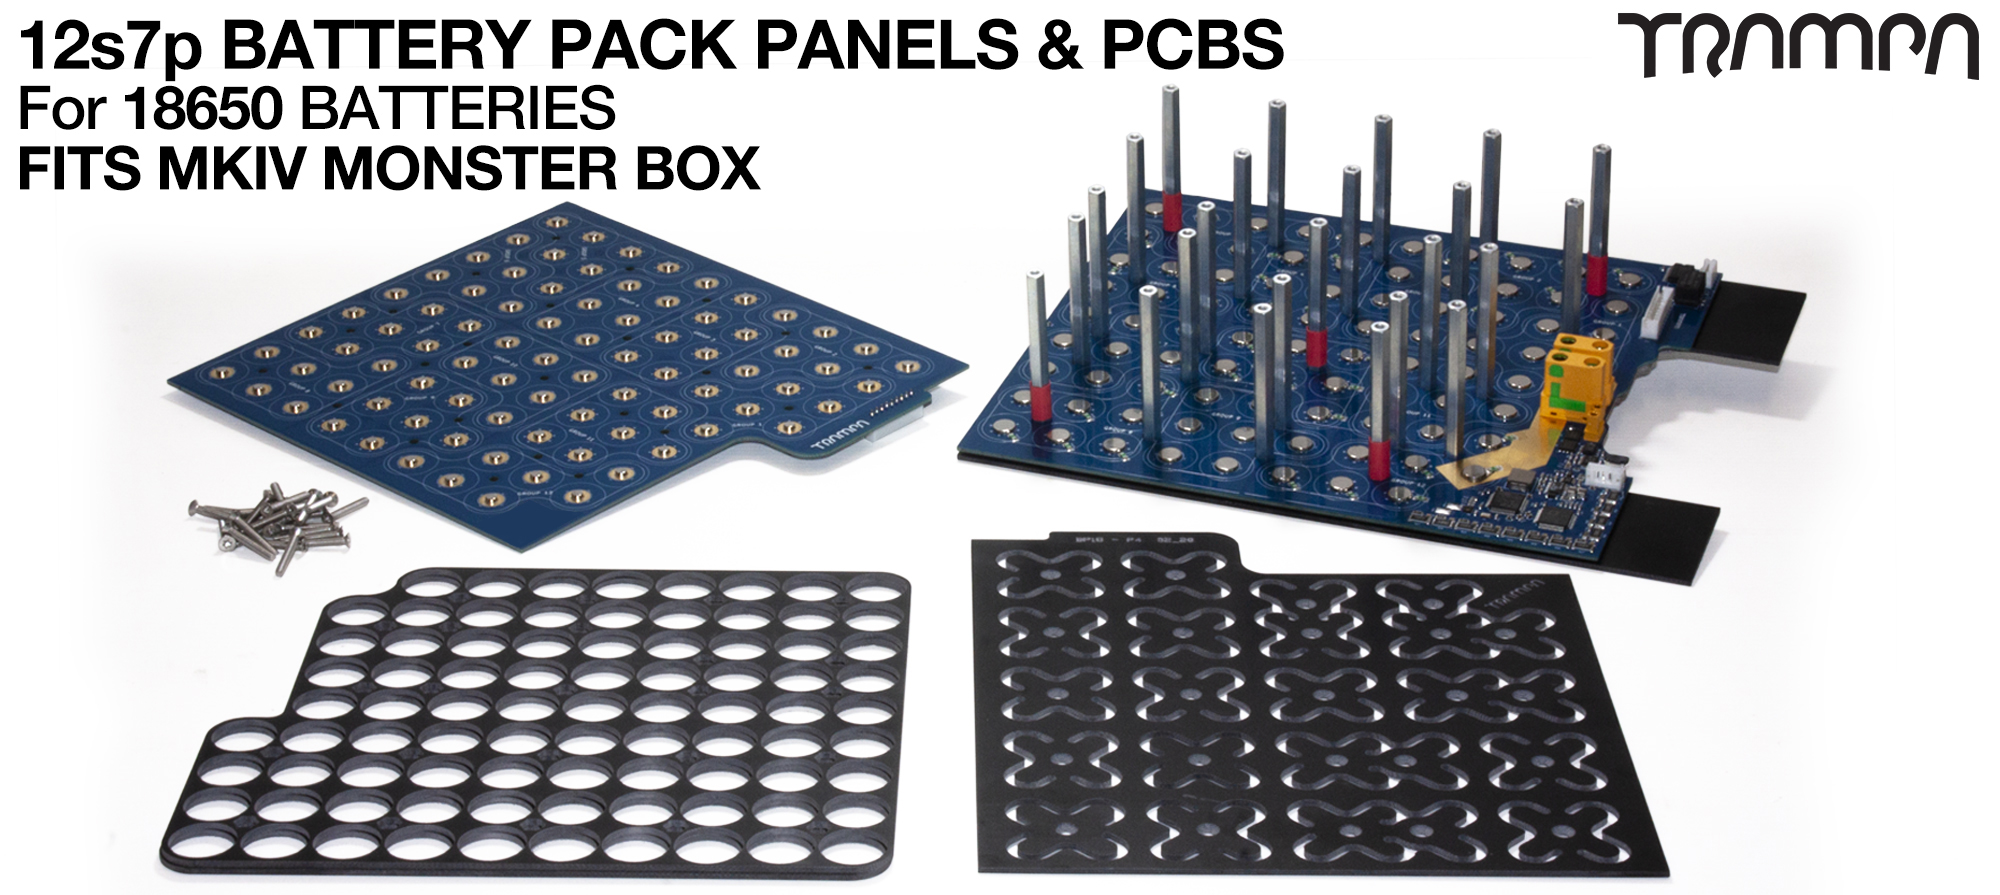 18650 PCB Pack with integrated BMS - Fits MKIV Classic MONSTER box & 84 x 18650 cells to give 21,000 mAh (21A) of range